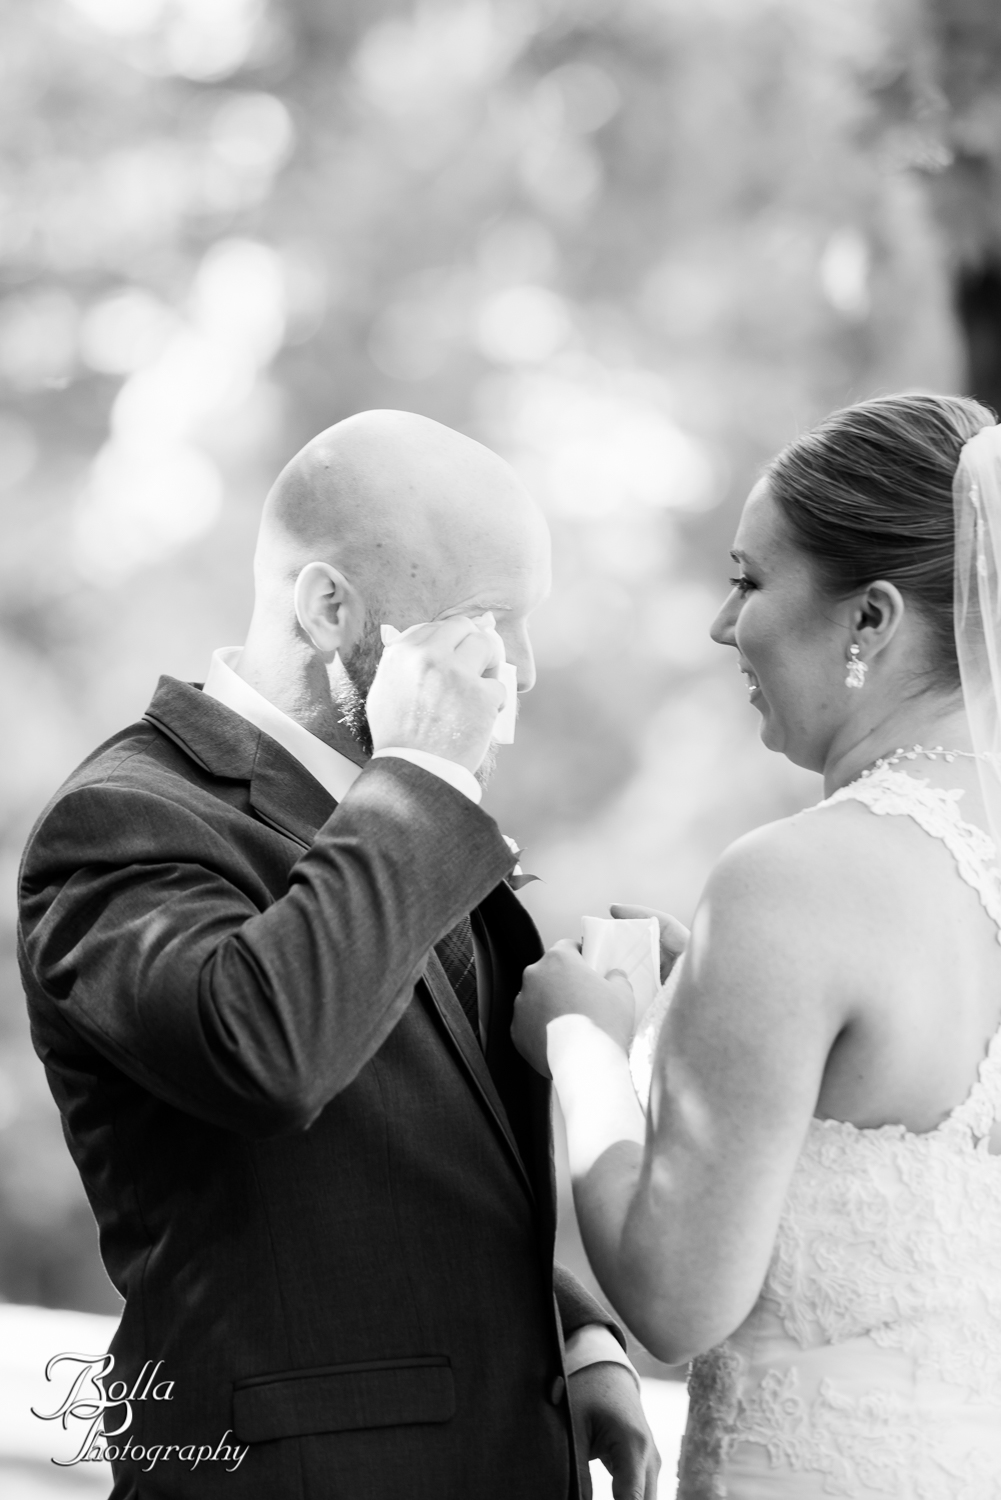 Bolla_Photography_St_Louis_wedding_photographer-0171.jpg